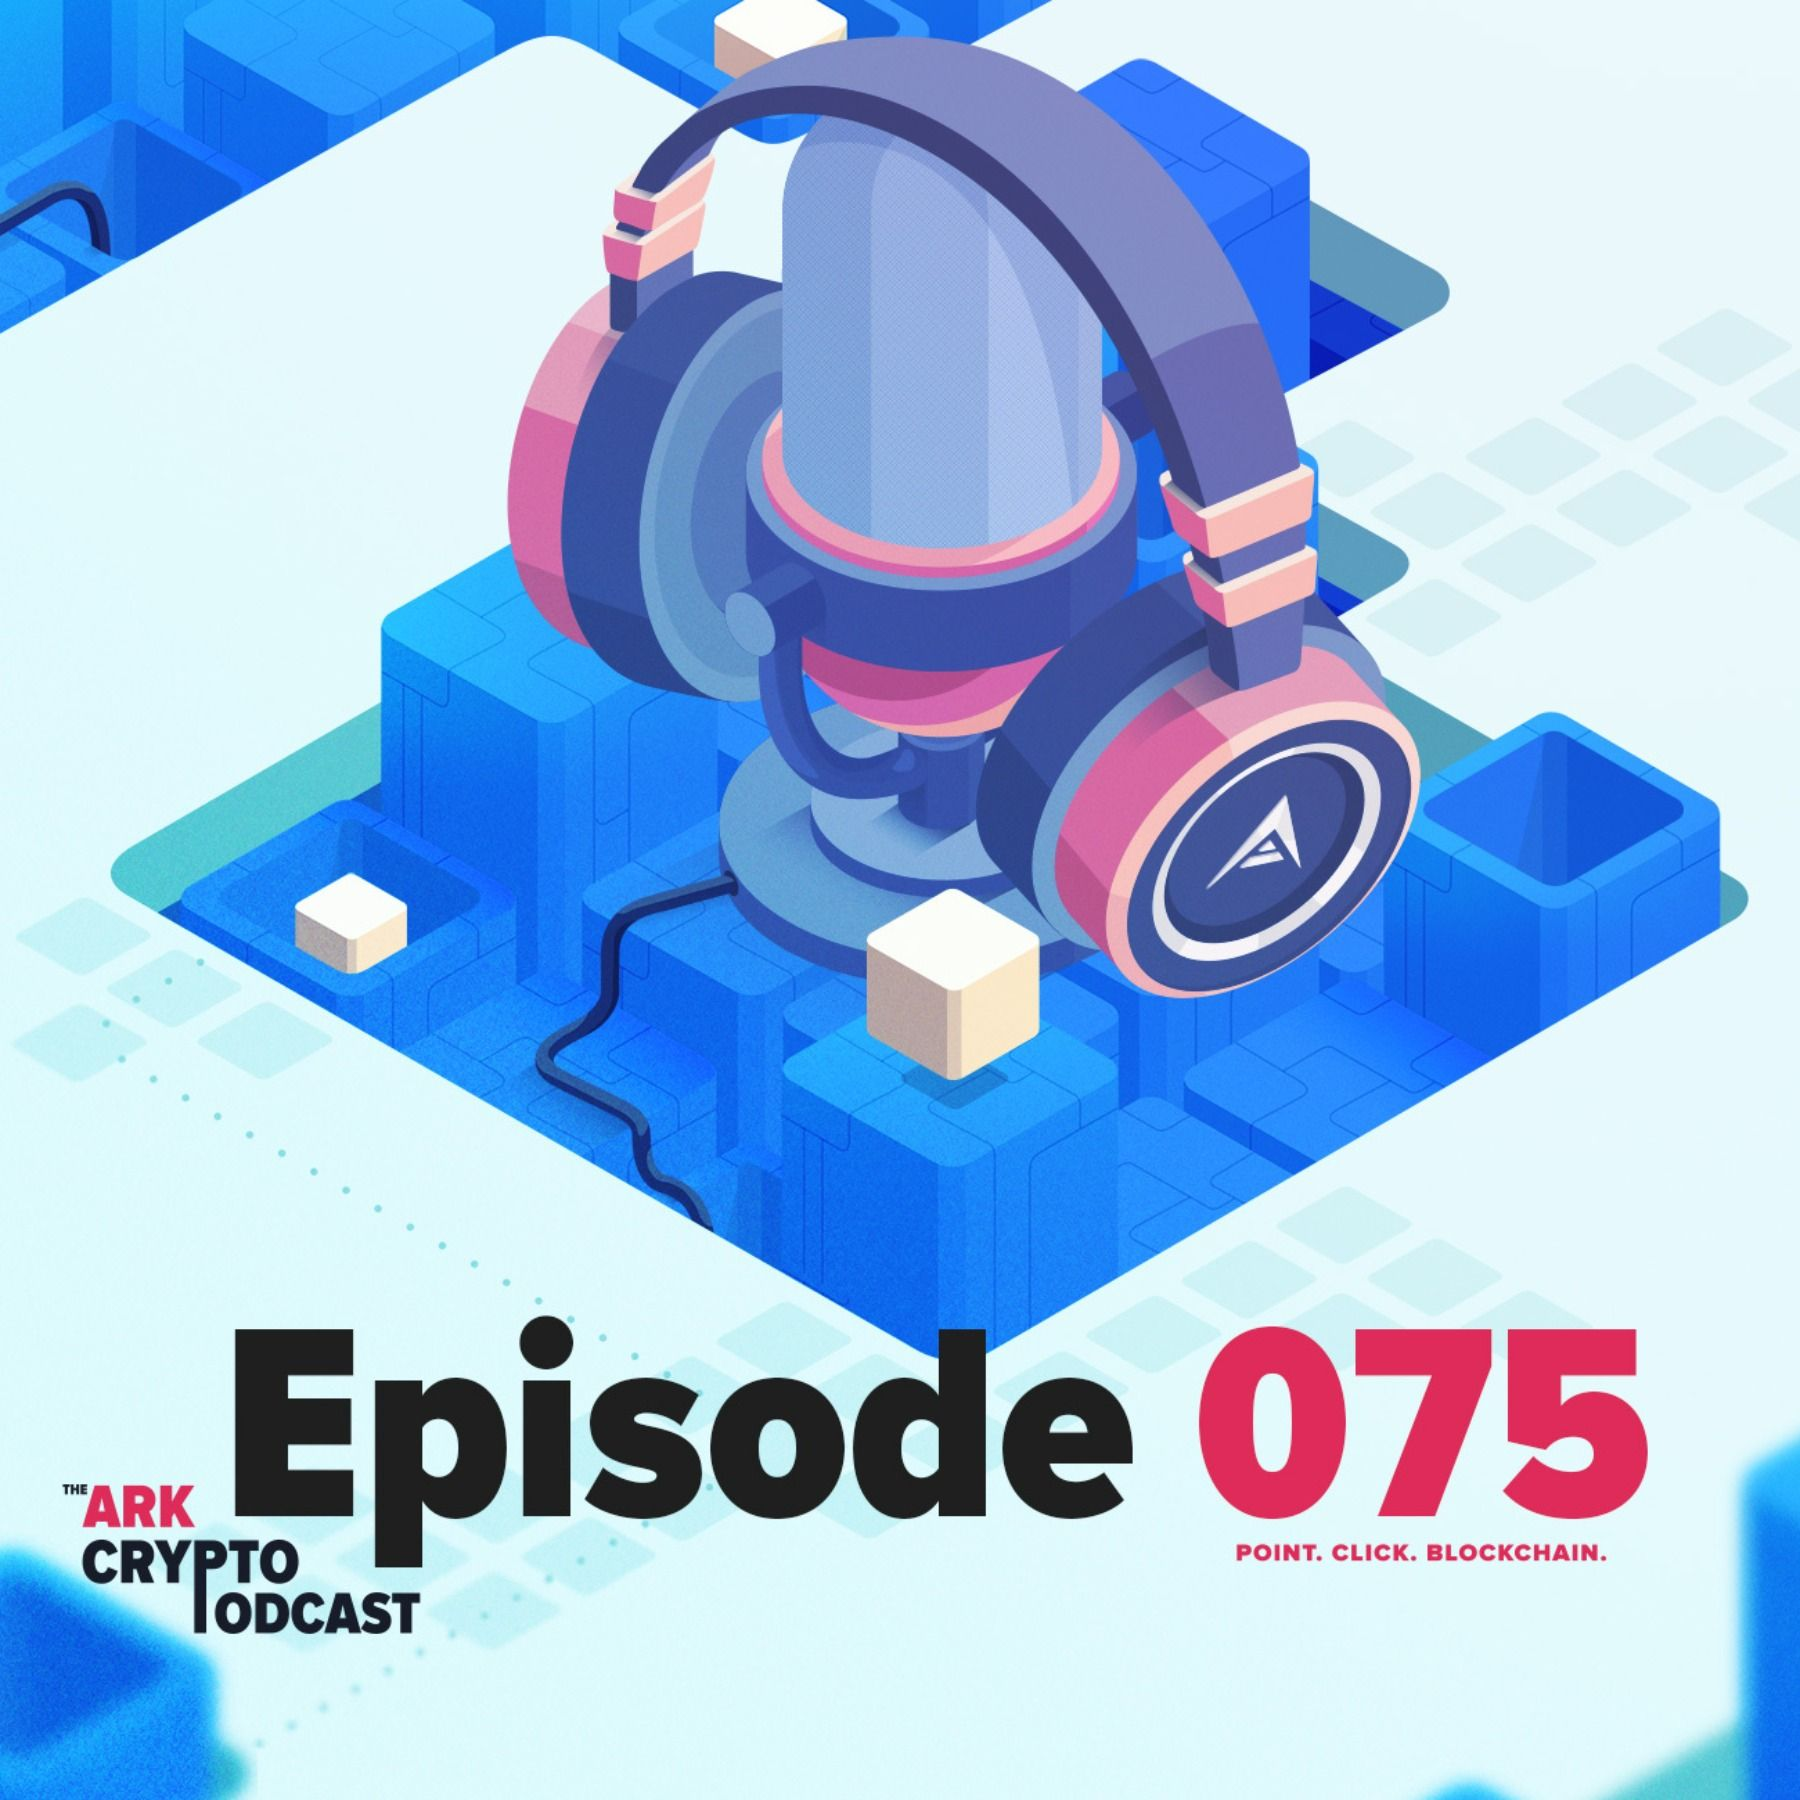 ARK.io Monthly Update April 2020 - ARK Crypto Podcast #075